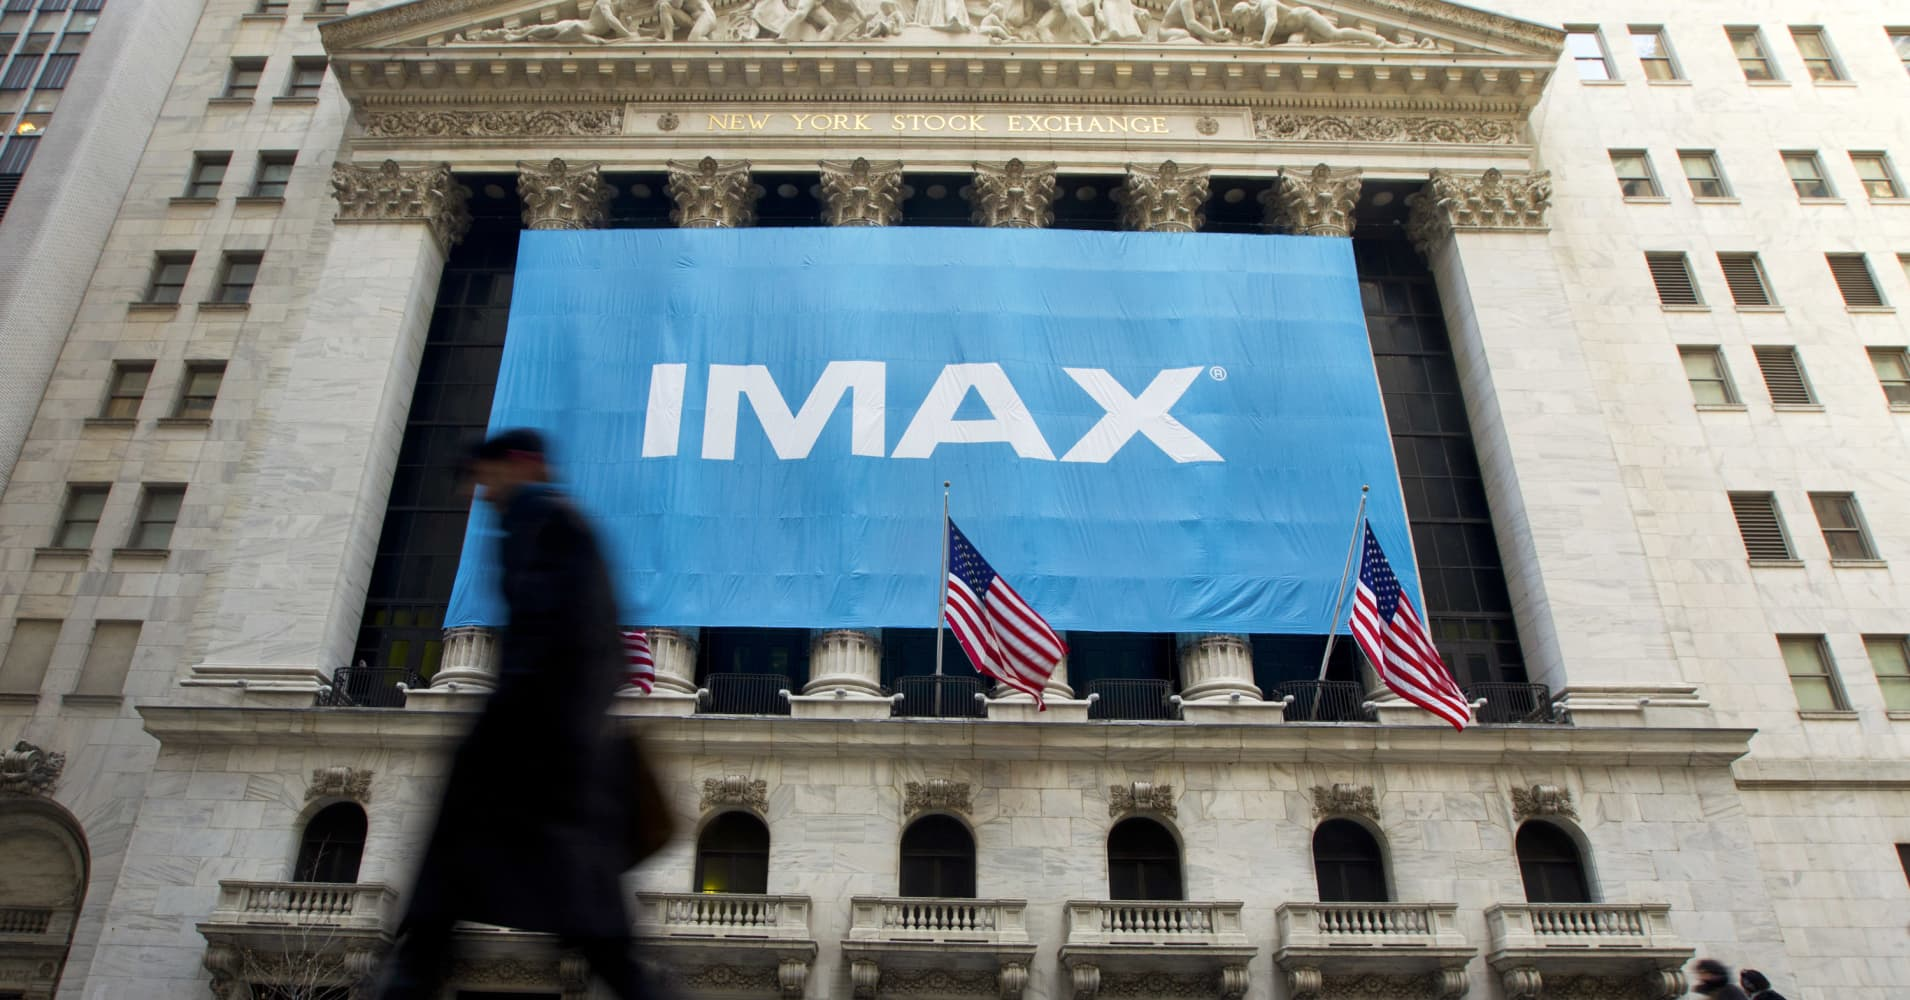 IMAX Corp. signage displayed outside the NYSE in 2011 when the company went public.